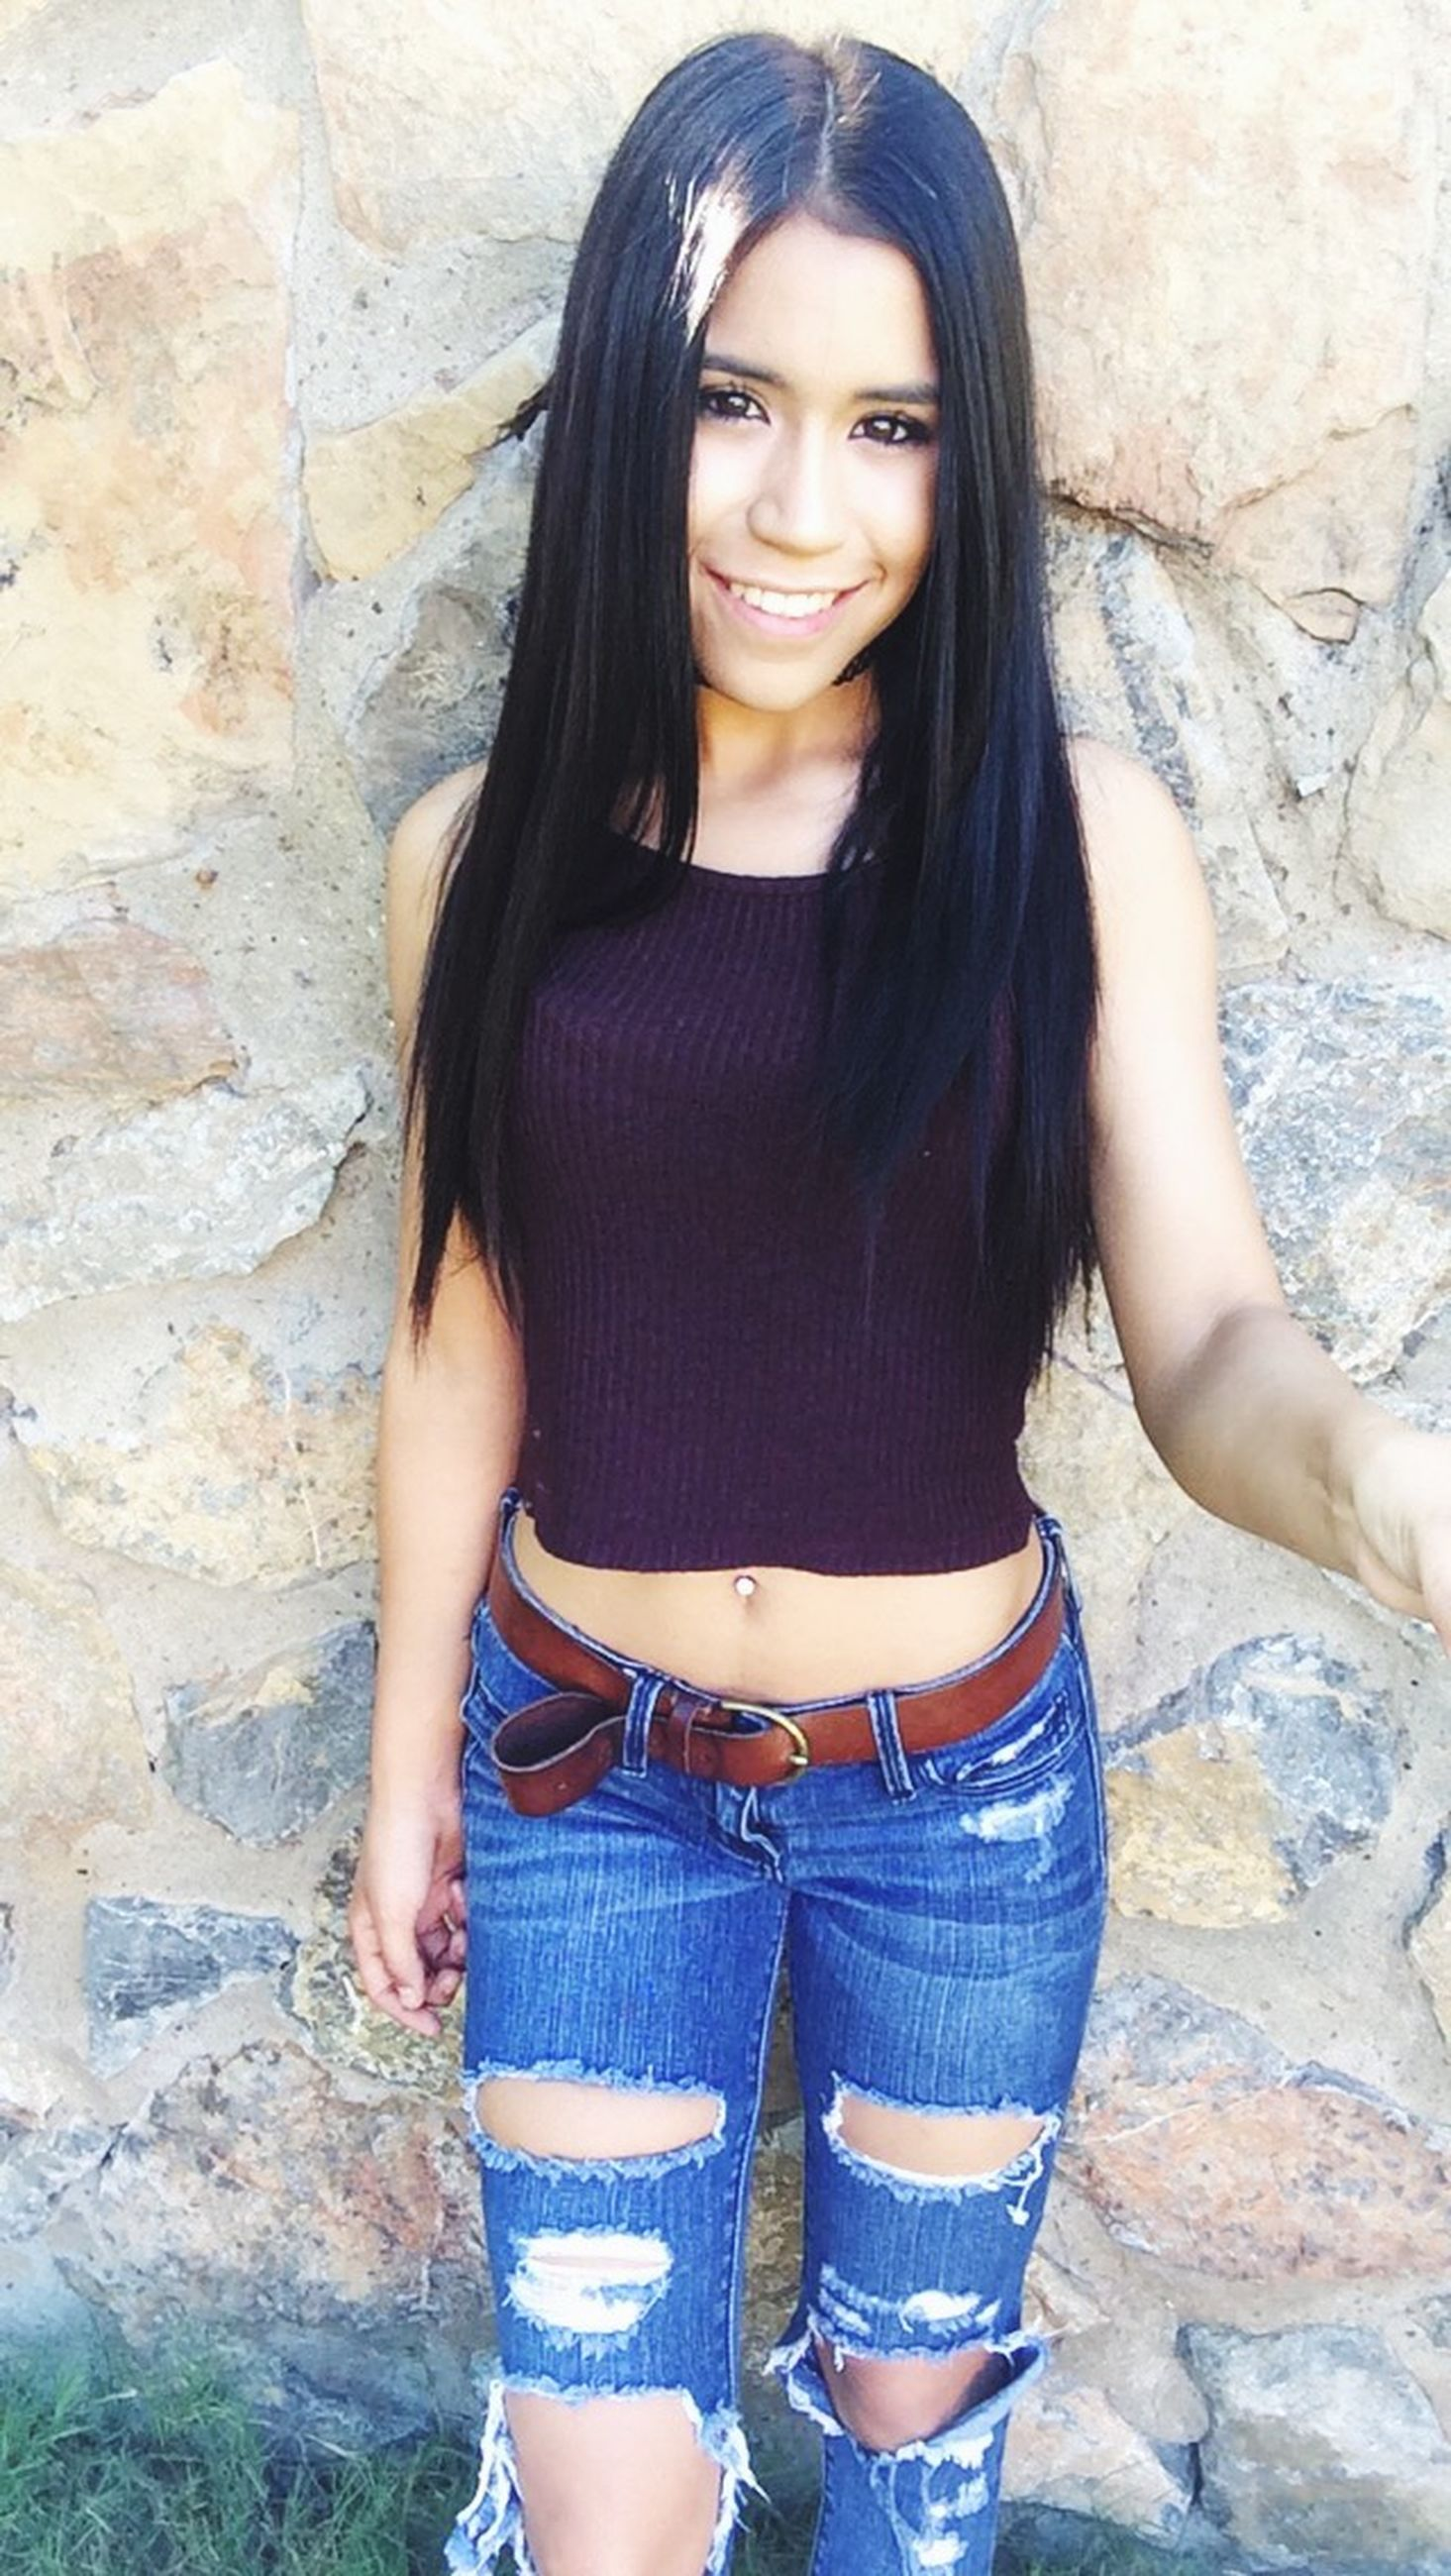 young adult, young women, portrait, looking at camera, person, lifestyles, front view, standing, casual clothing, long hair, three quarter length, leisure activity, wall - building feature, black hair, smiling, fashion, beauty